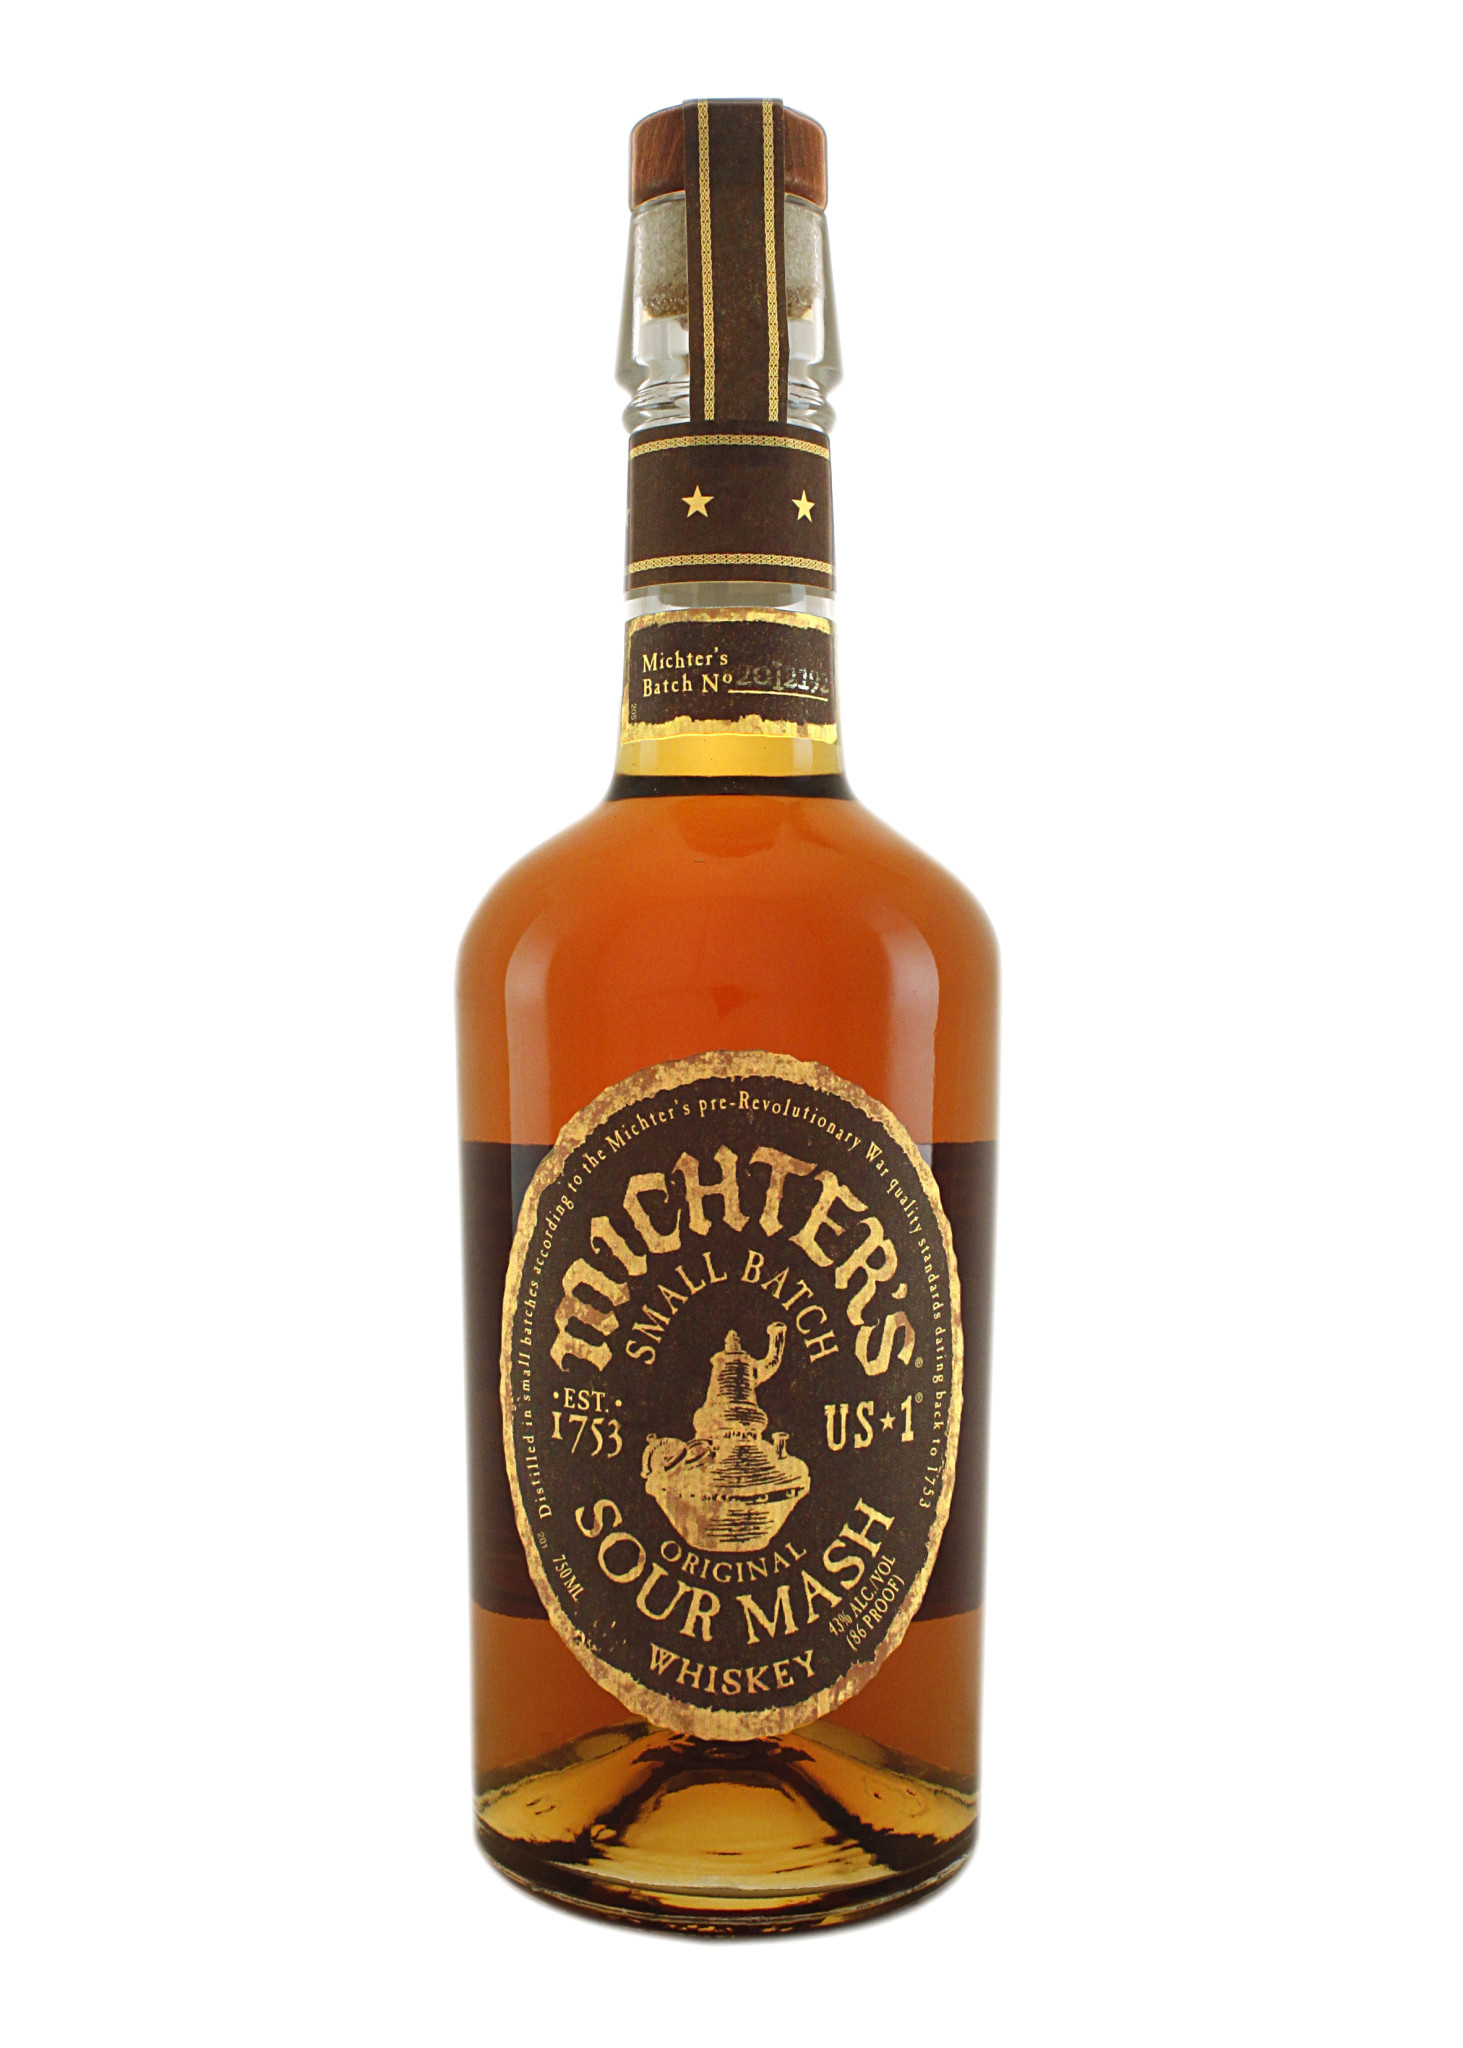 Michter's US 1 Small Batch Sour Mash Whiskey, Louisville, Kentucky